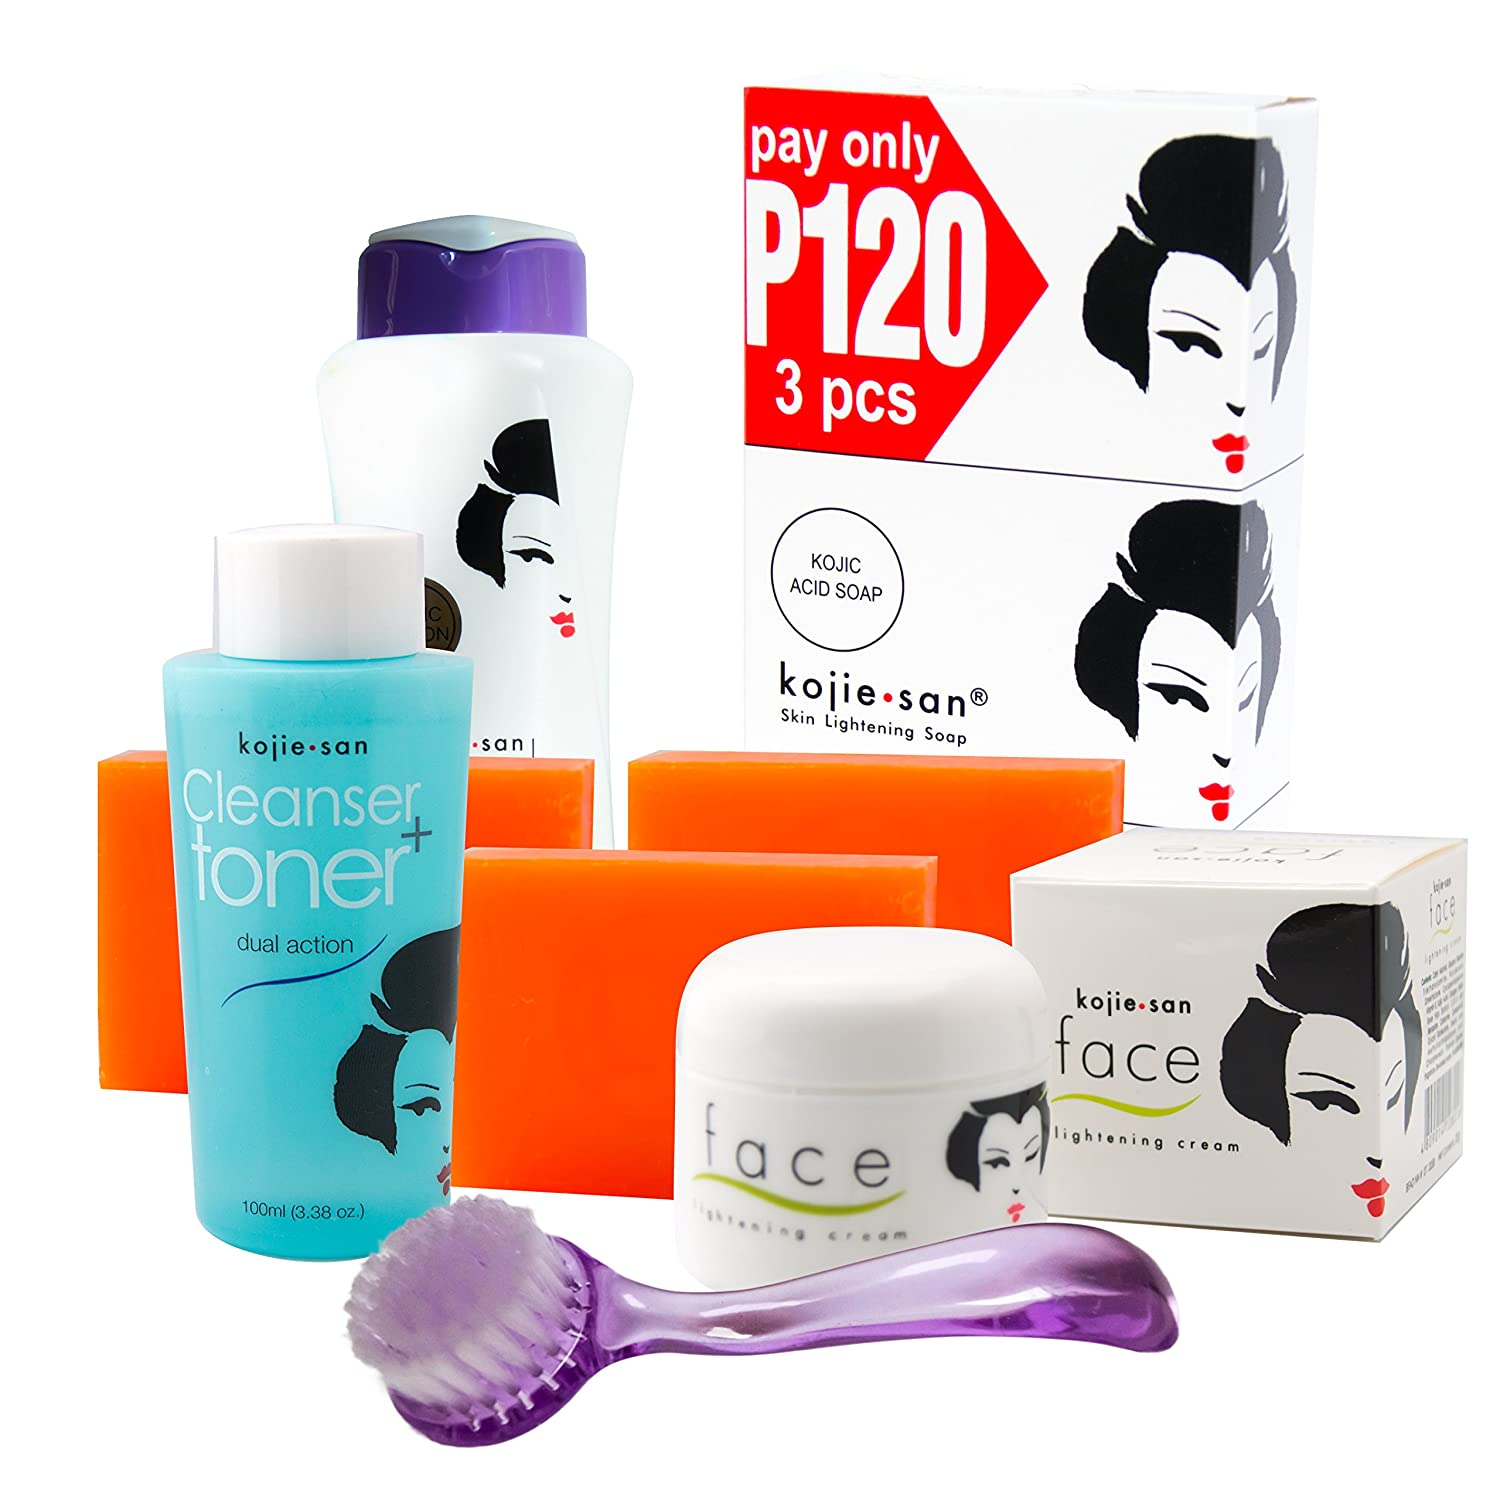 Kojie San Face & Body Complete Whitening 7pc Set -Kojic Acid Soap, Body Lightening Lotion with SPF25, Face Lightening Cream, Toner, and Cleansing Brush by Kojie San